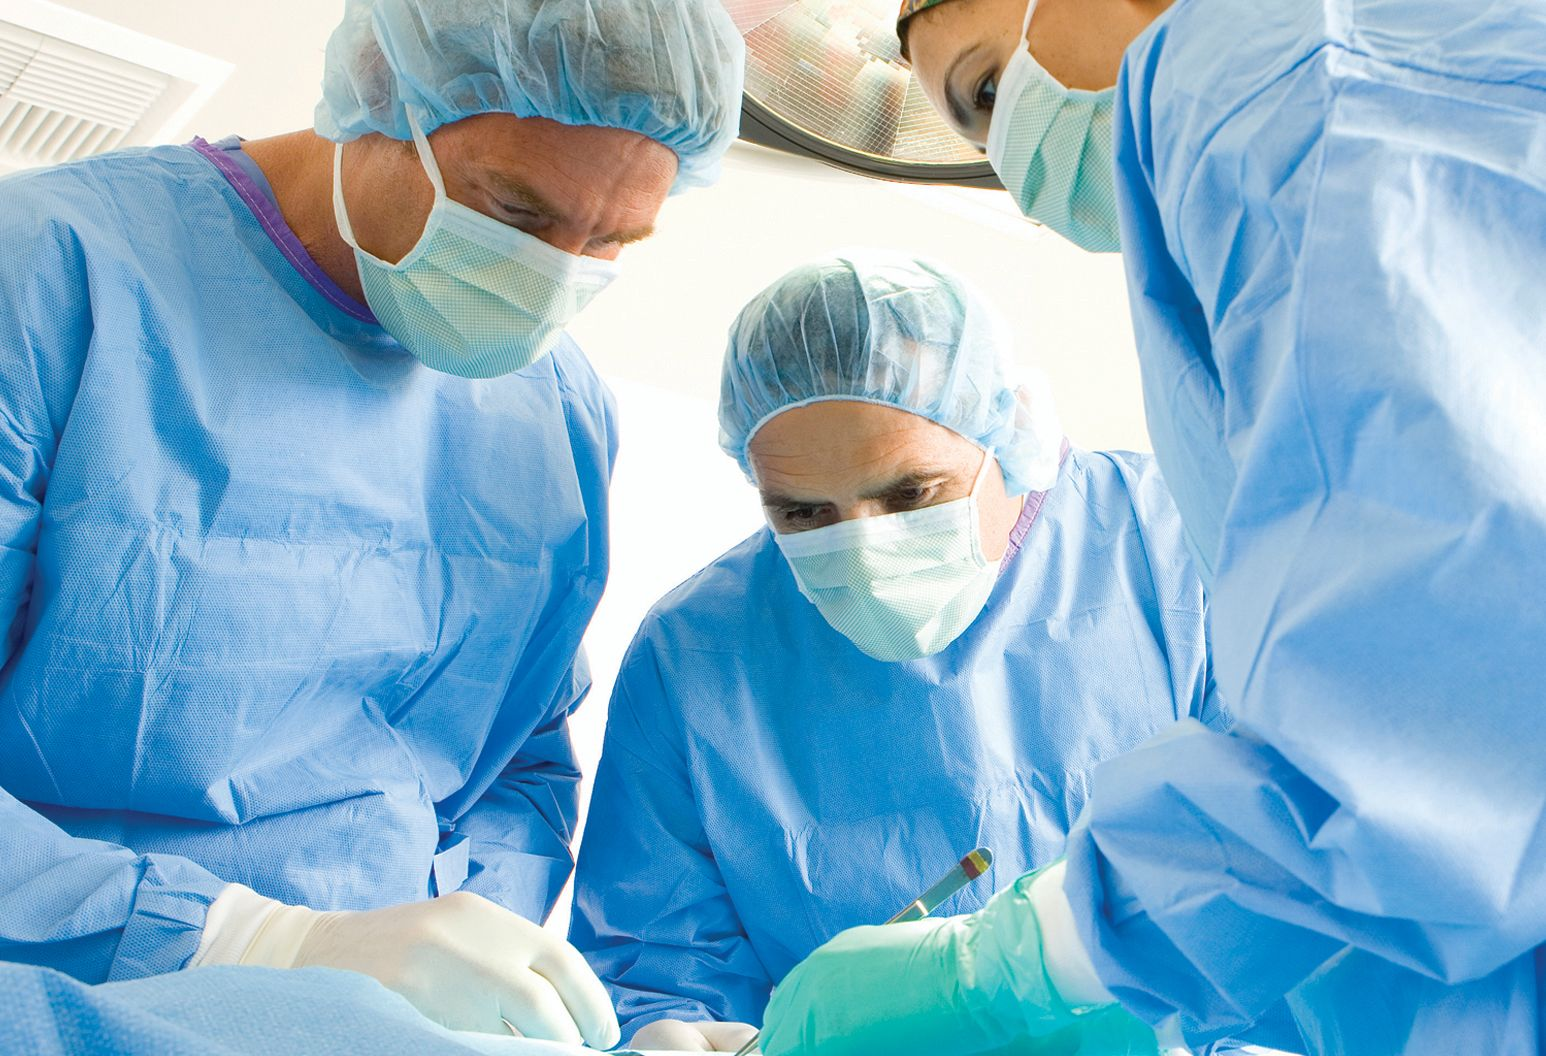 Two male and one female medical professionals in blue sterile gowns and masks stand over patient on operating table who is unseen.